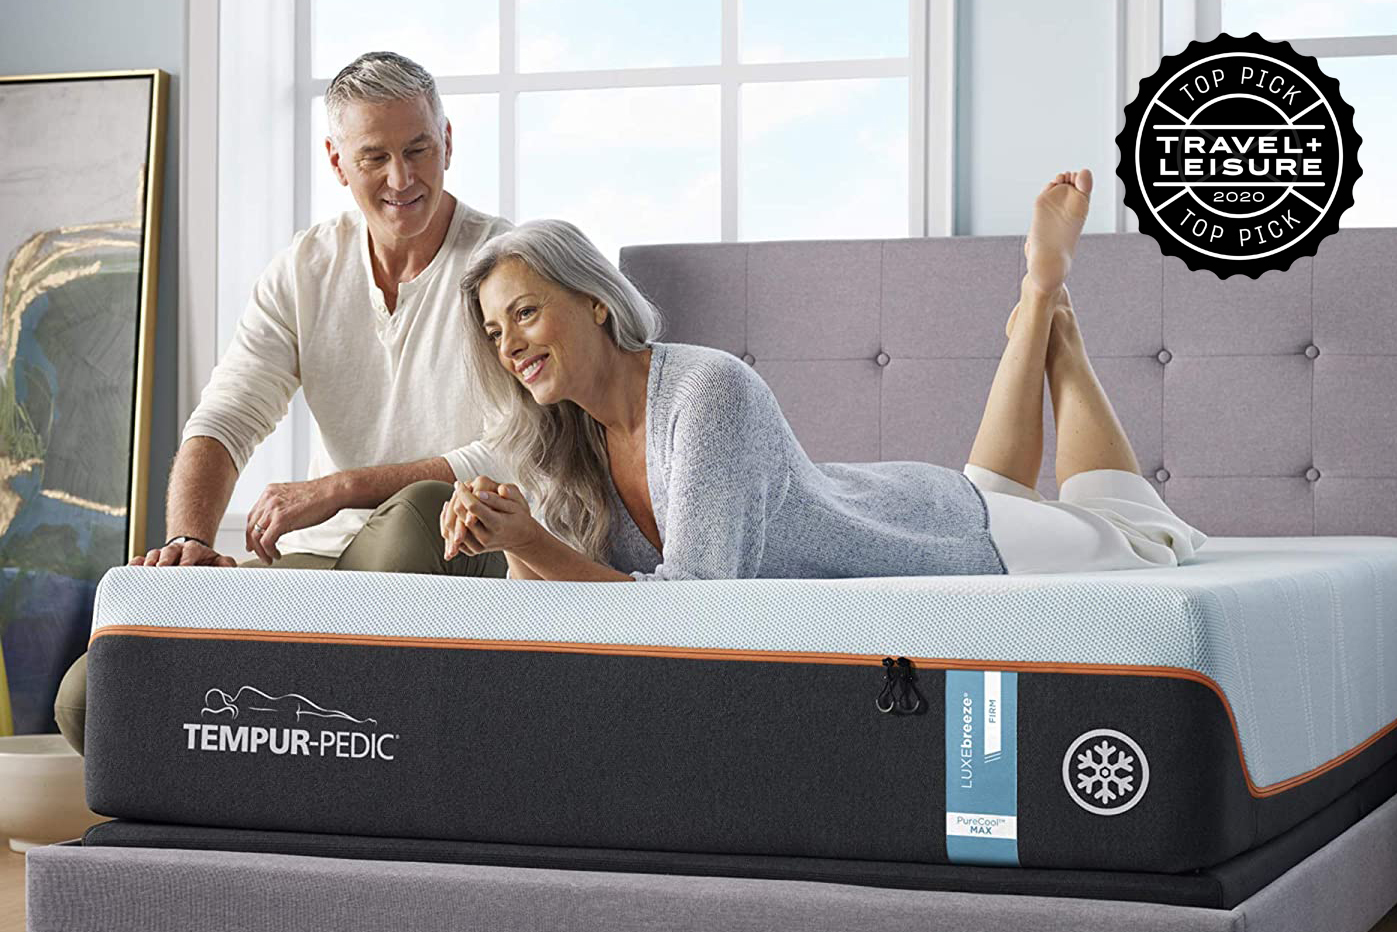 tempur-pedic luxebreeze cooling mattress